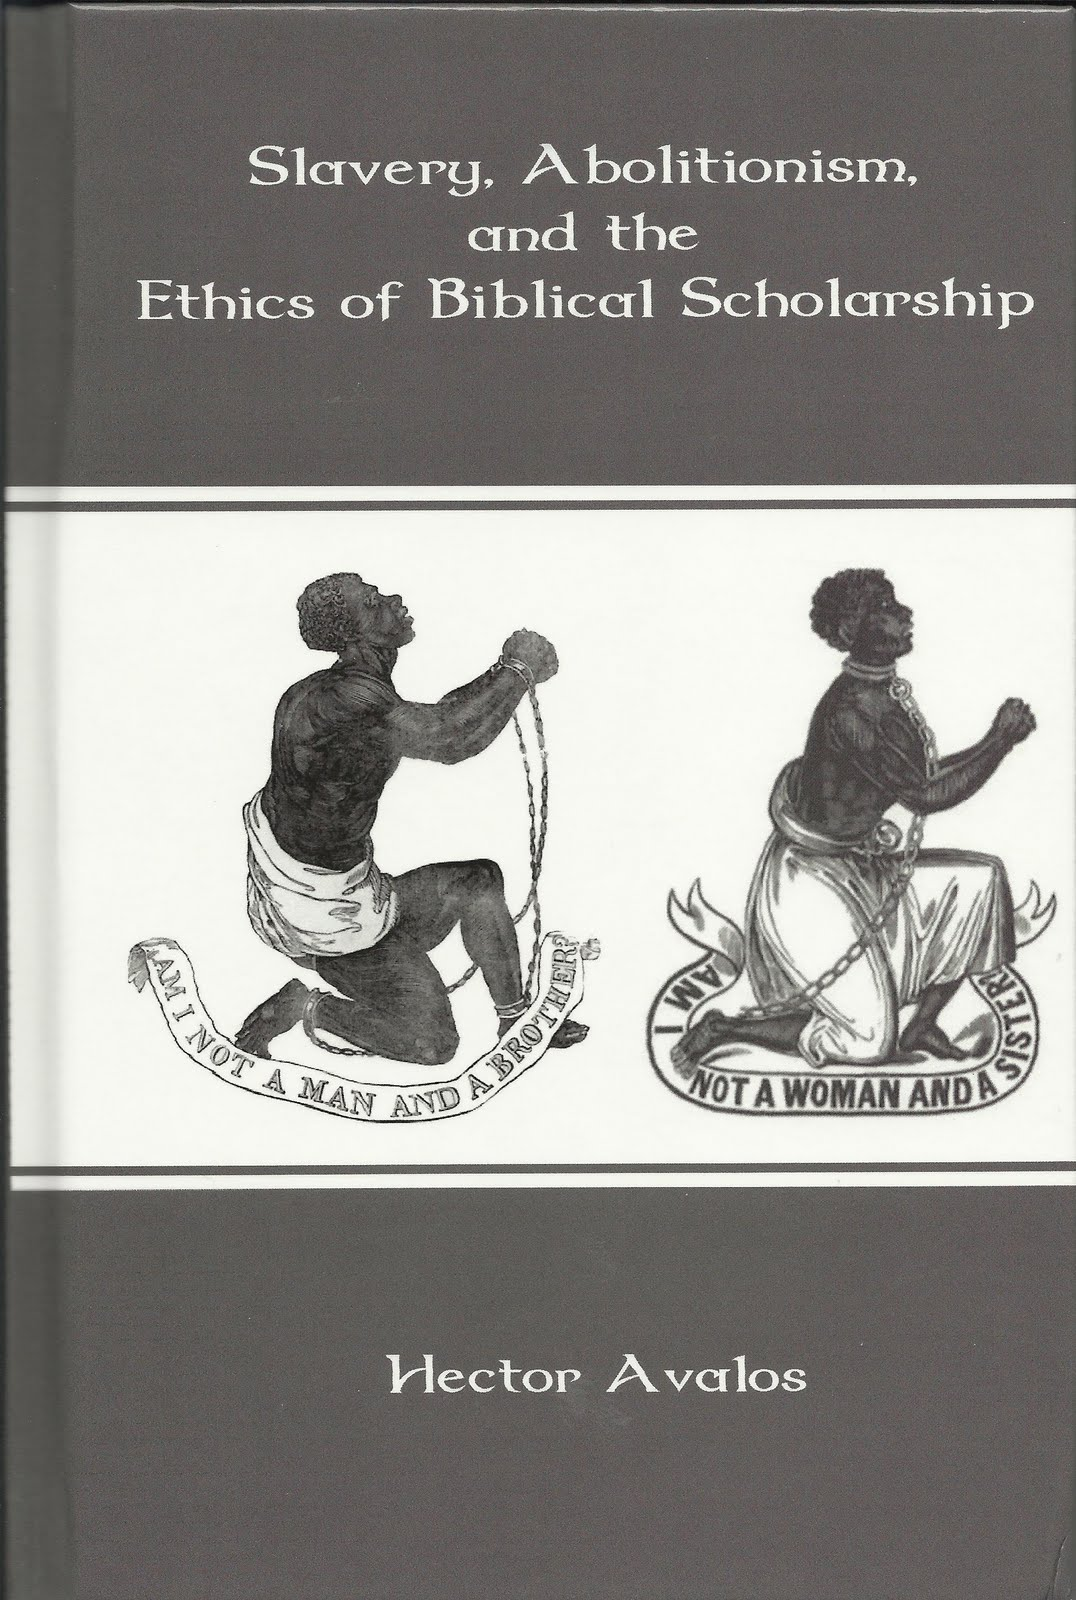 Examining Issues of Identification and Ethical Concerns in Biblical Scholarship:  An Interview with Hector Avalos